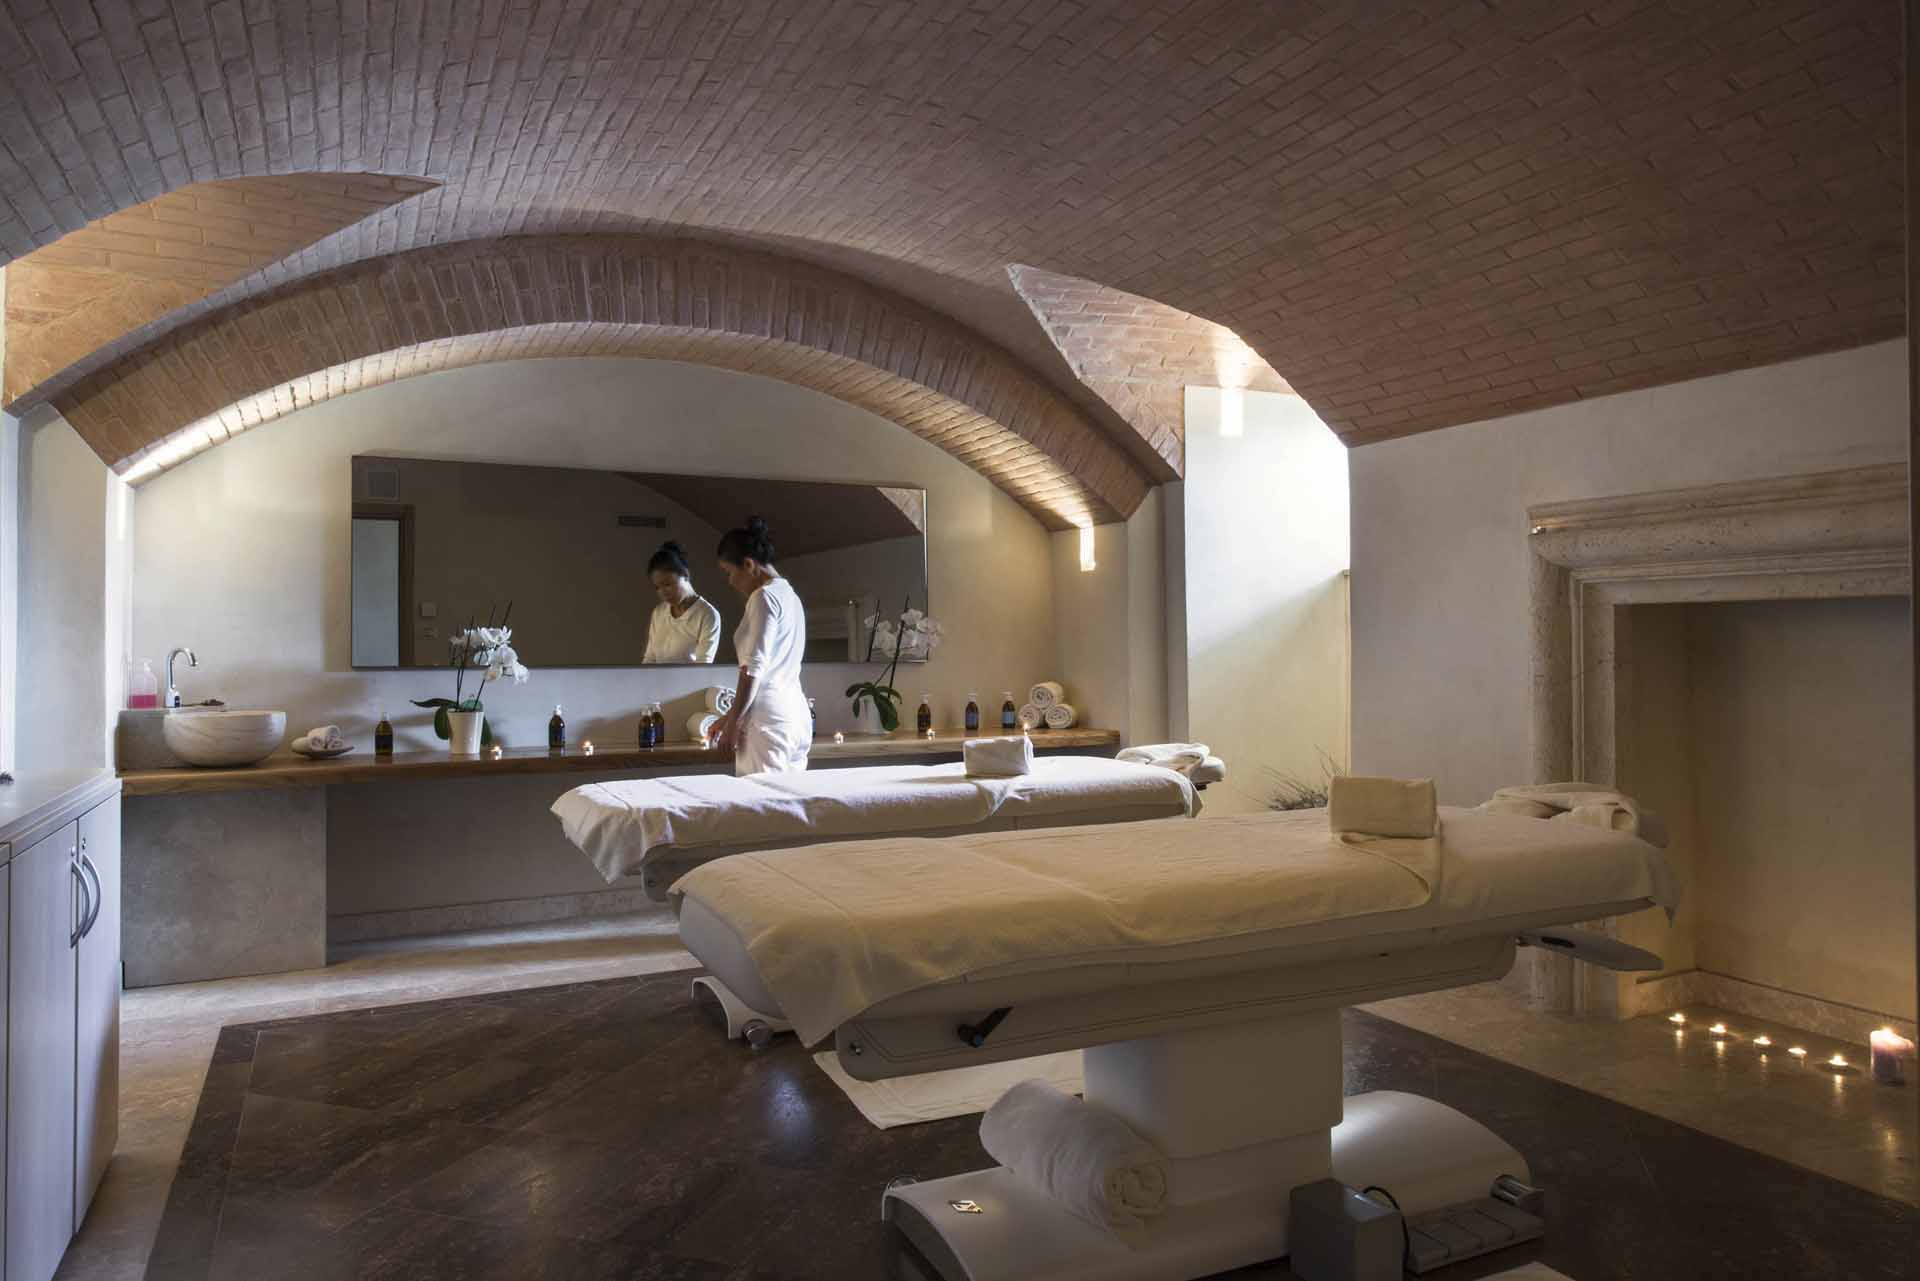 castello di velona resort, thermal spa & winery Montalcino 00003